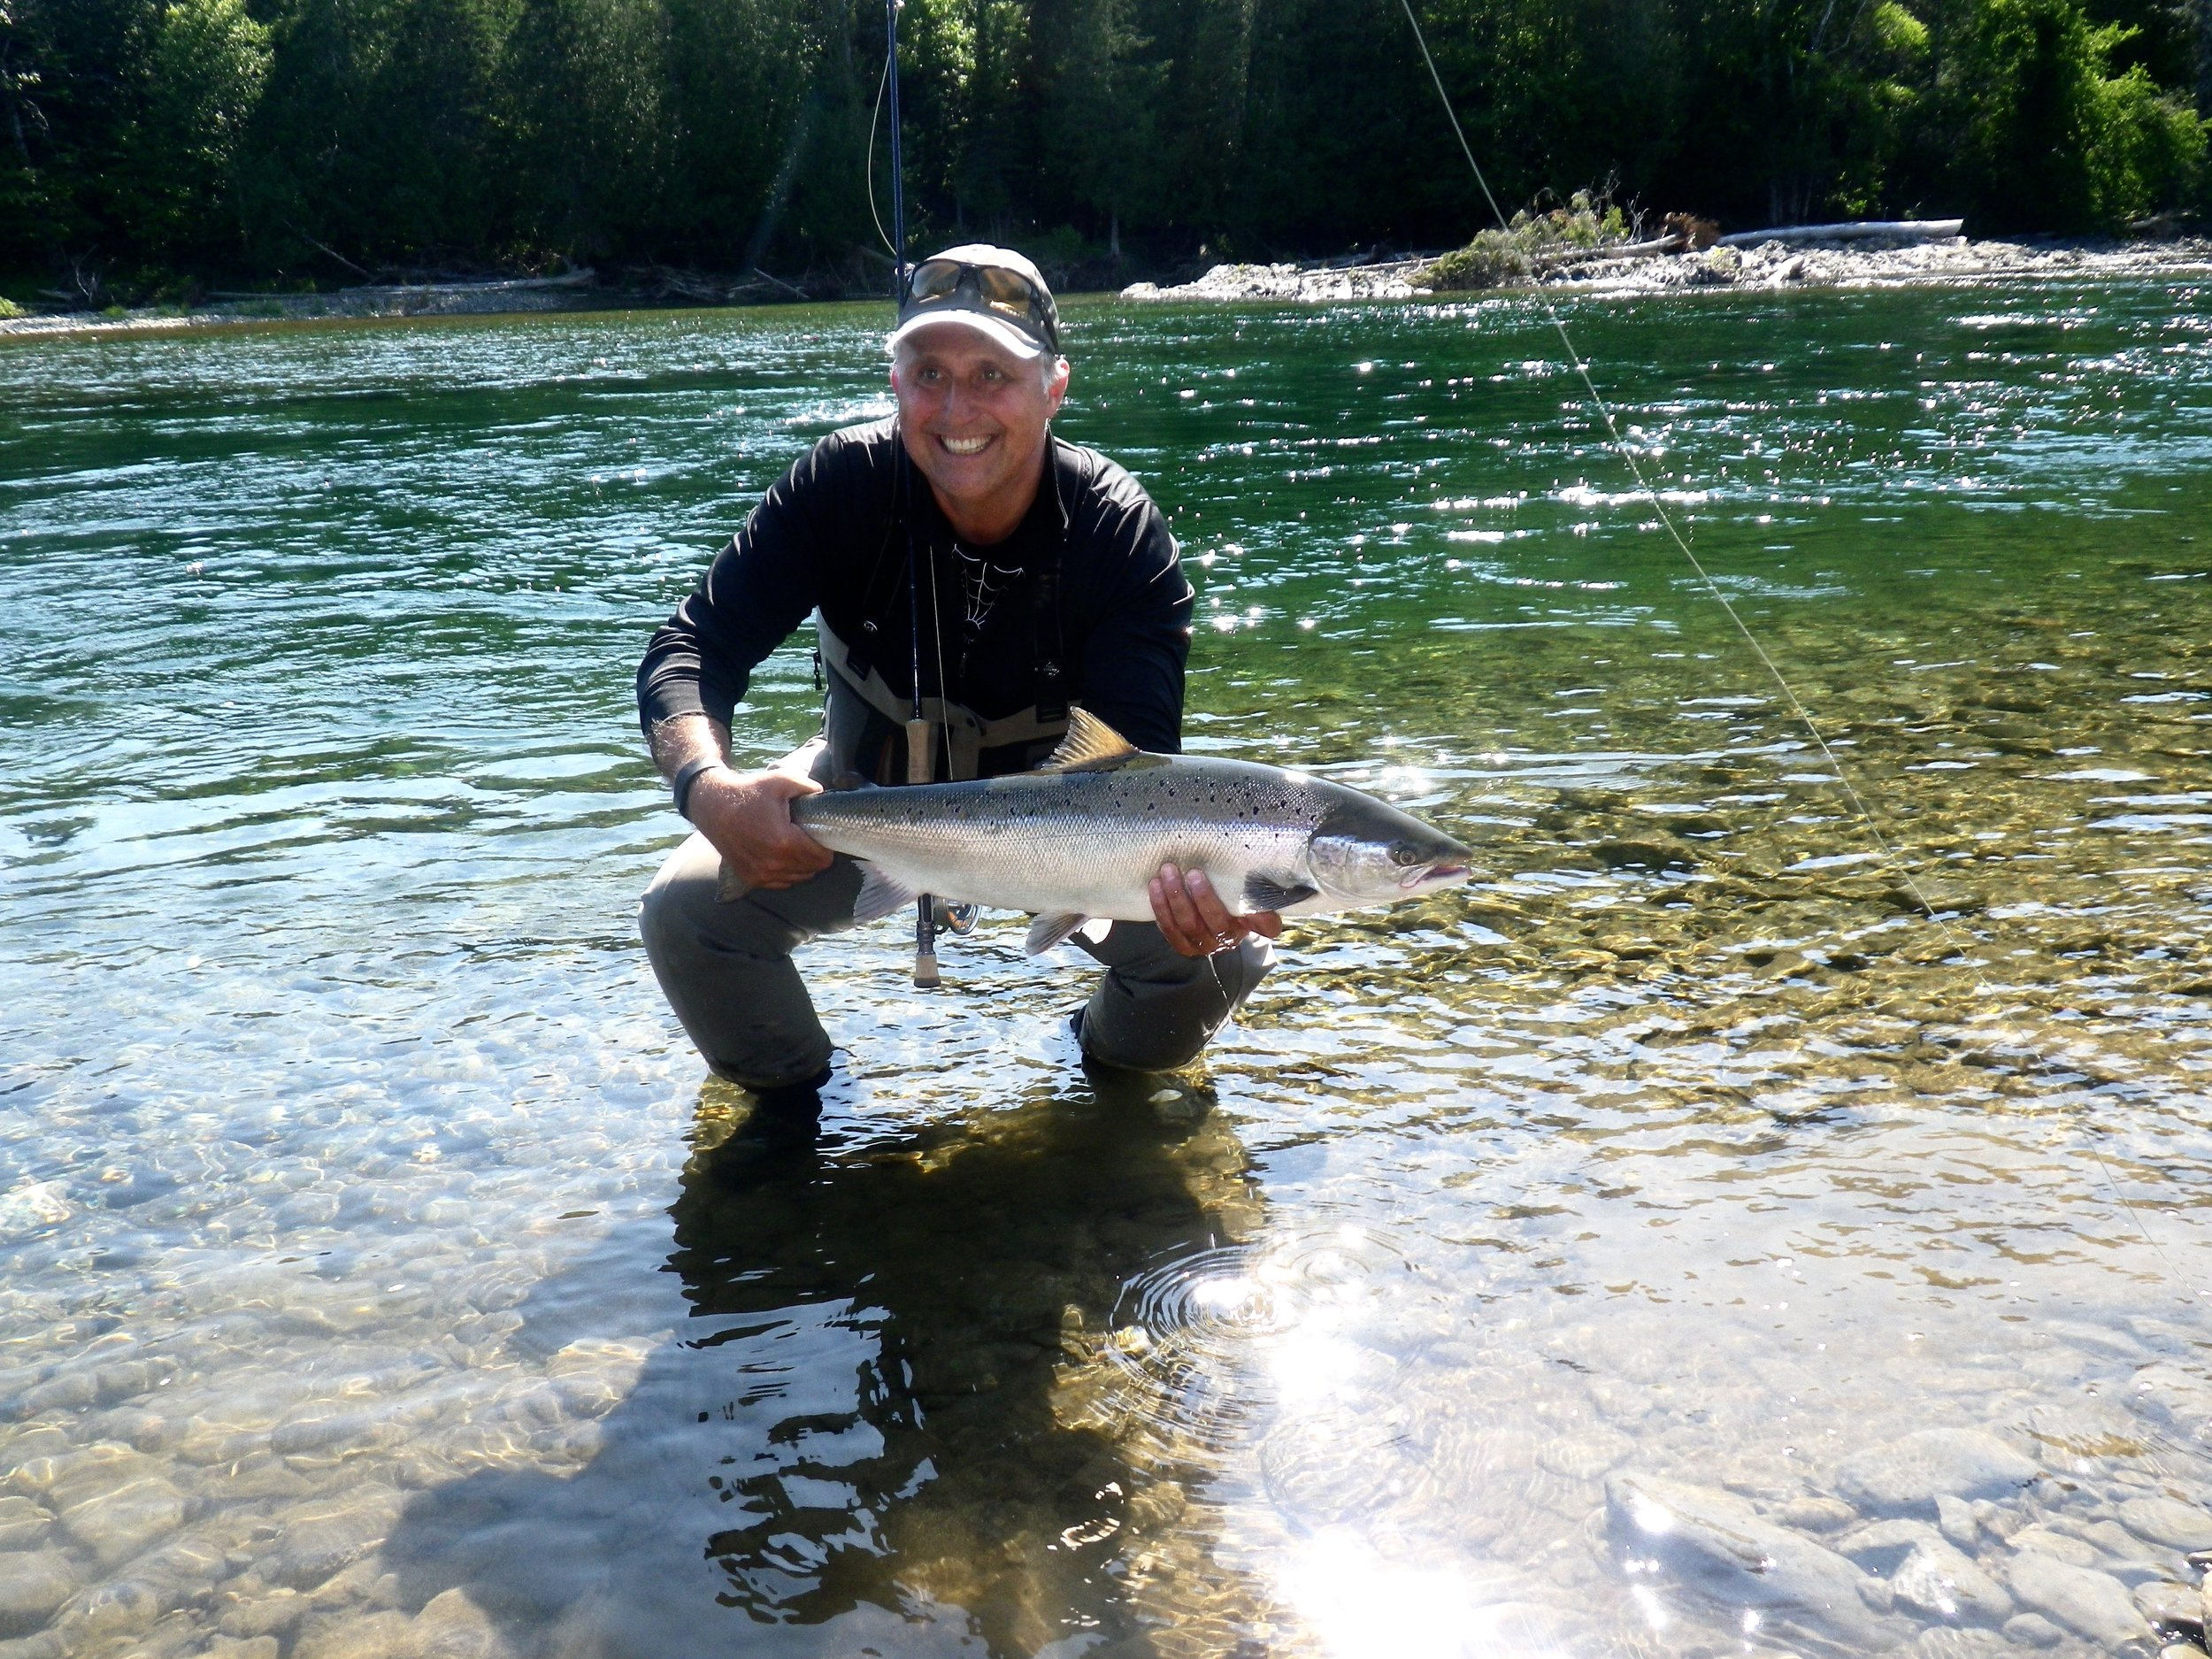 Long time Salmon Lodge guest Luc Chabot with nice one on the Petite, congratulations Luc!